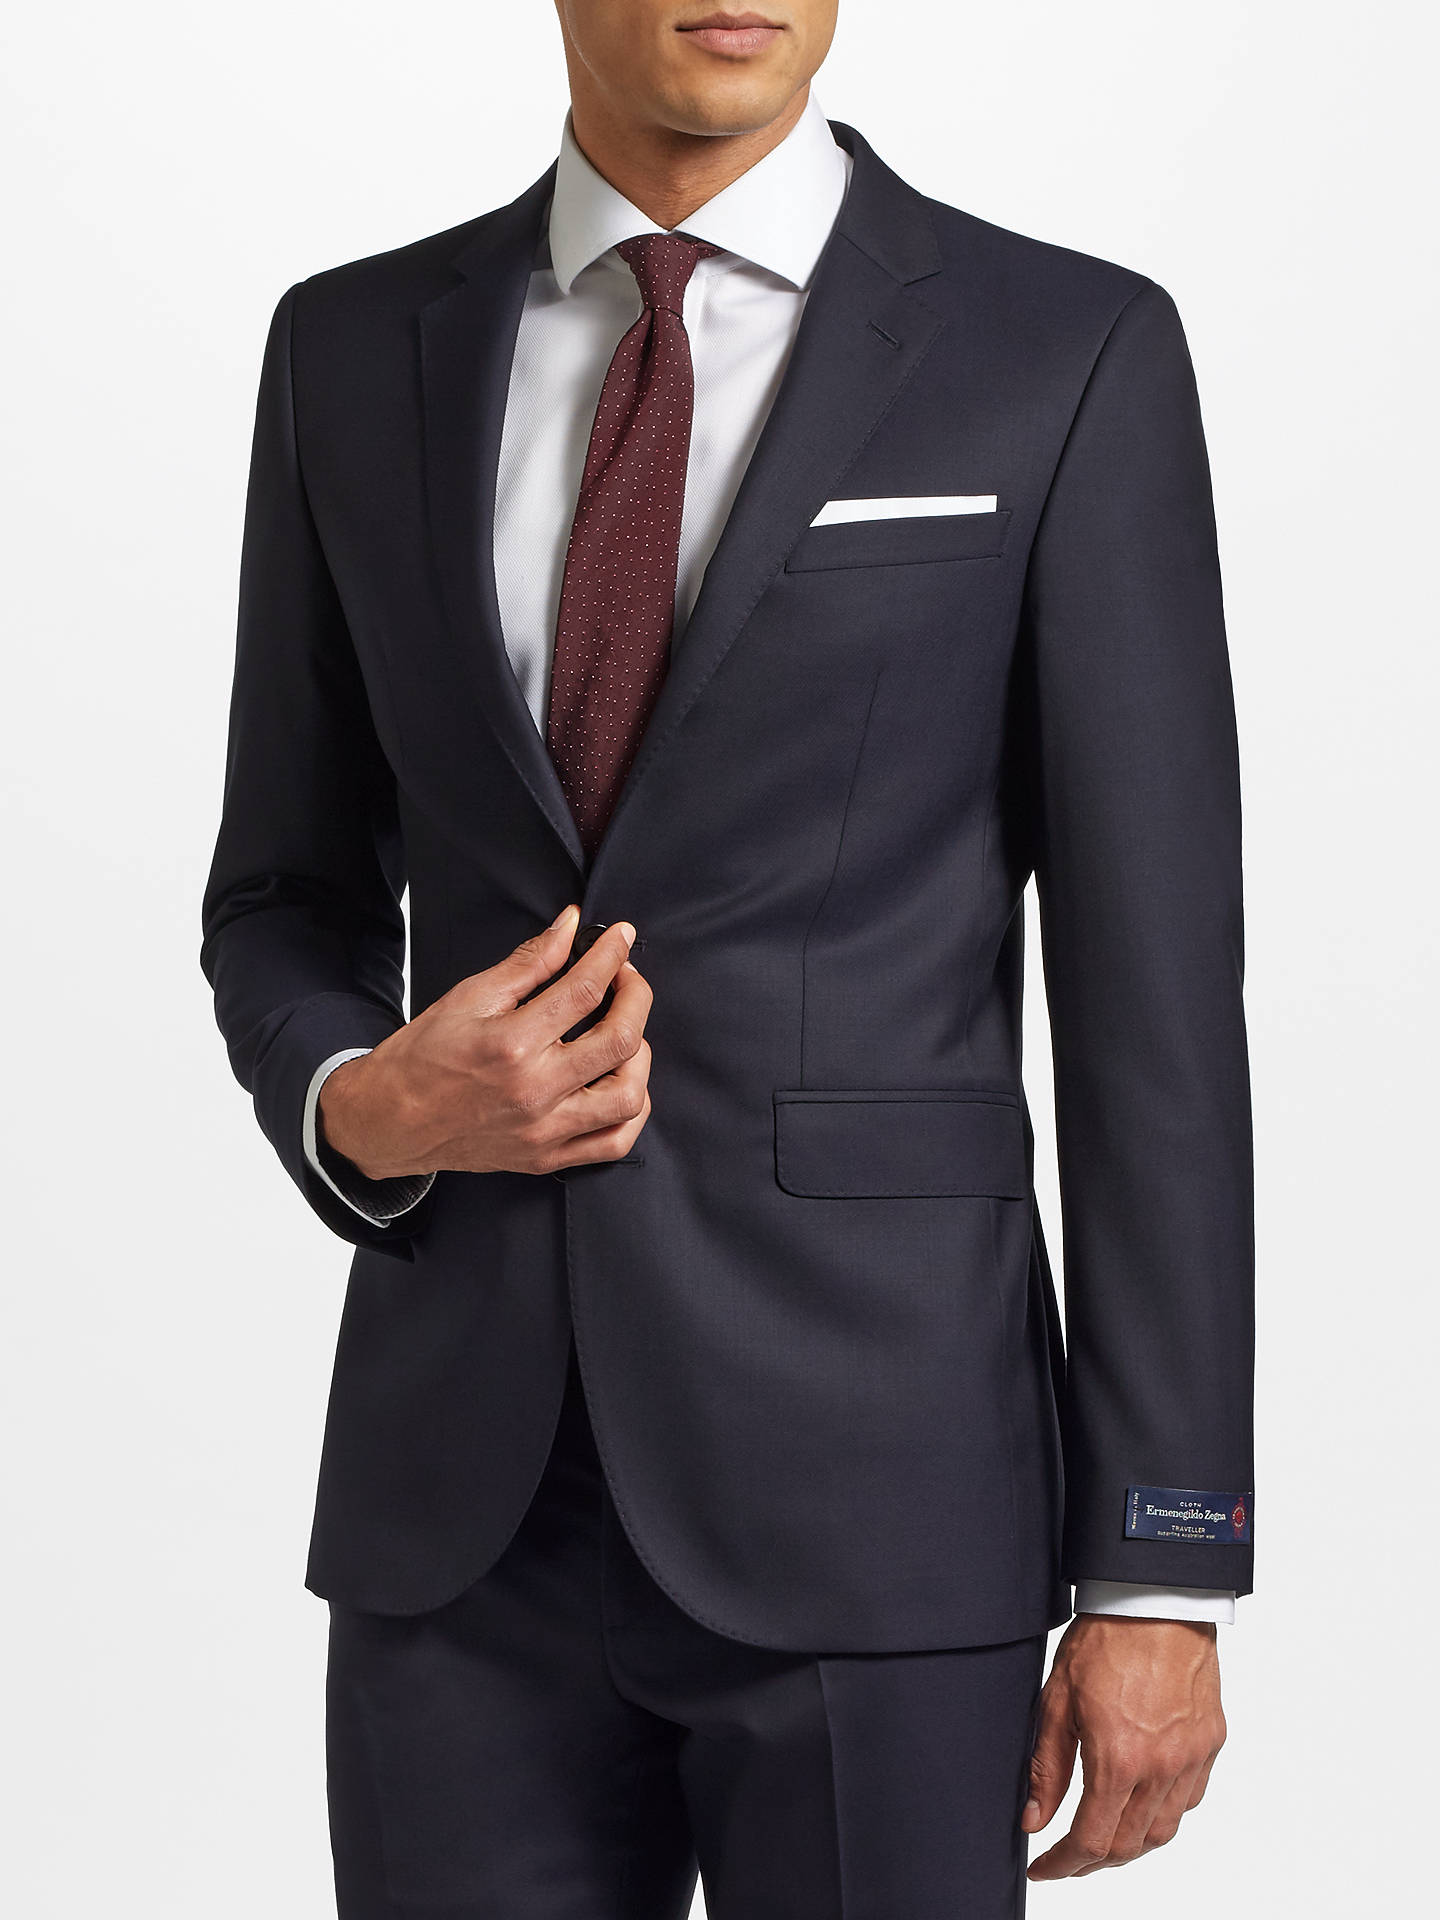 Buy John Lewis & Partners Ermenegildo Zegna Super 160s Wool Twill Half Canvas Tailored Suit Jacket, Navy, 42L Online at johnlewis.com